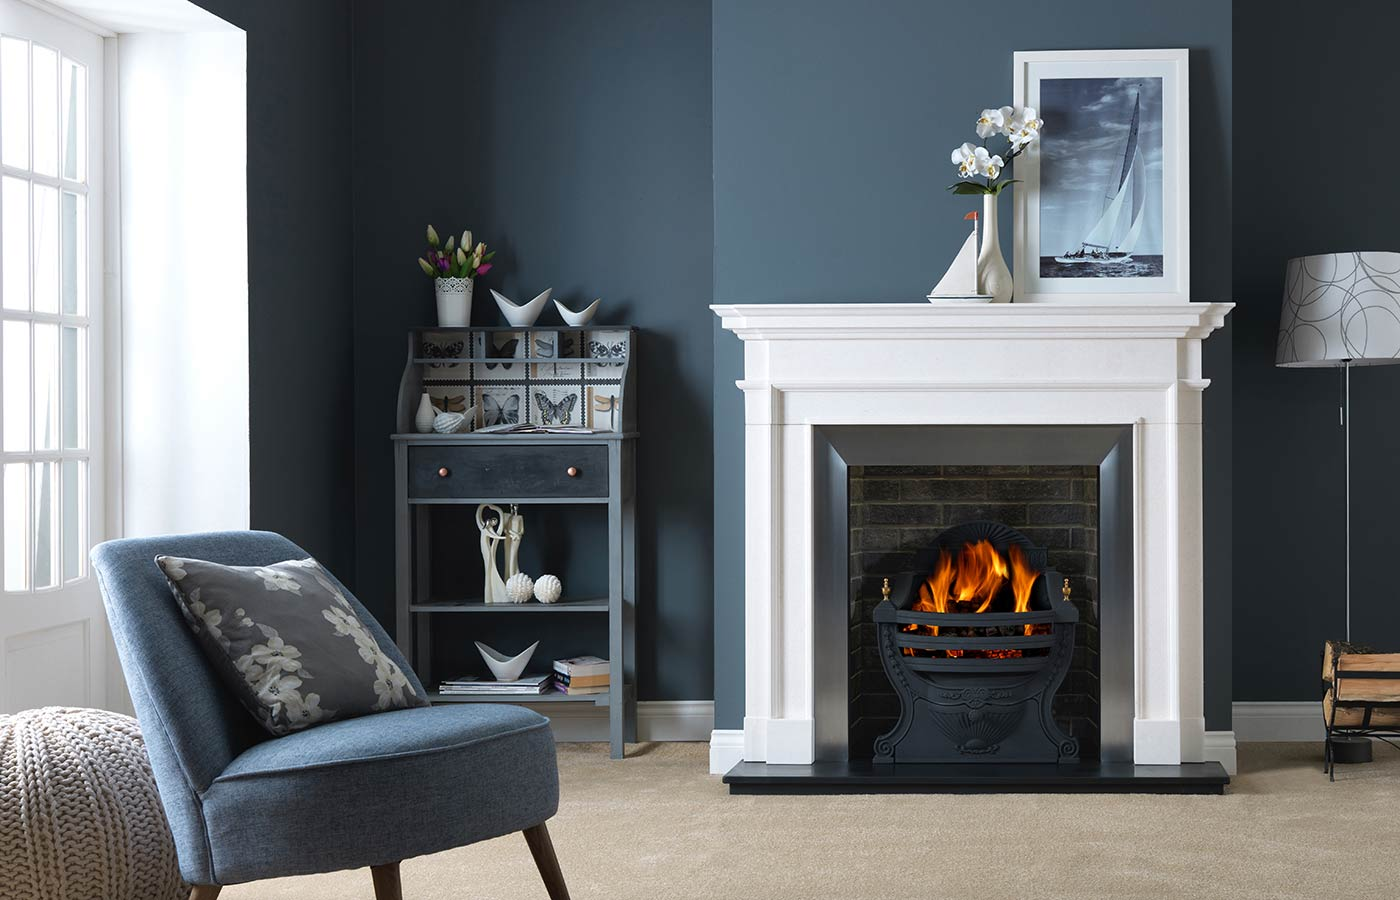 Aversa Agean Limestone with Large Black Victorian Fire Basket